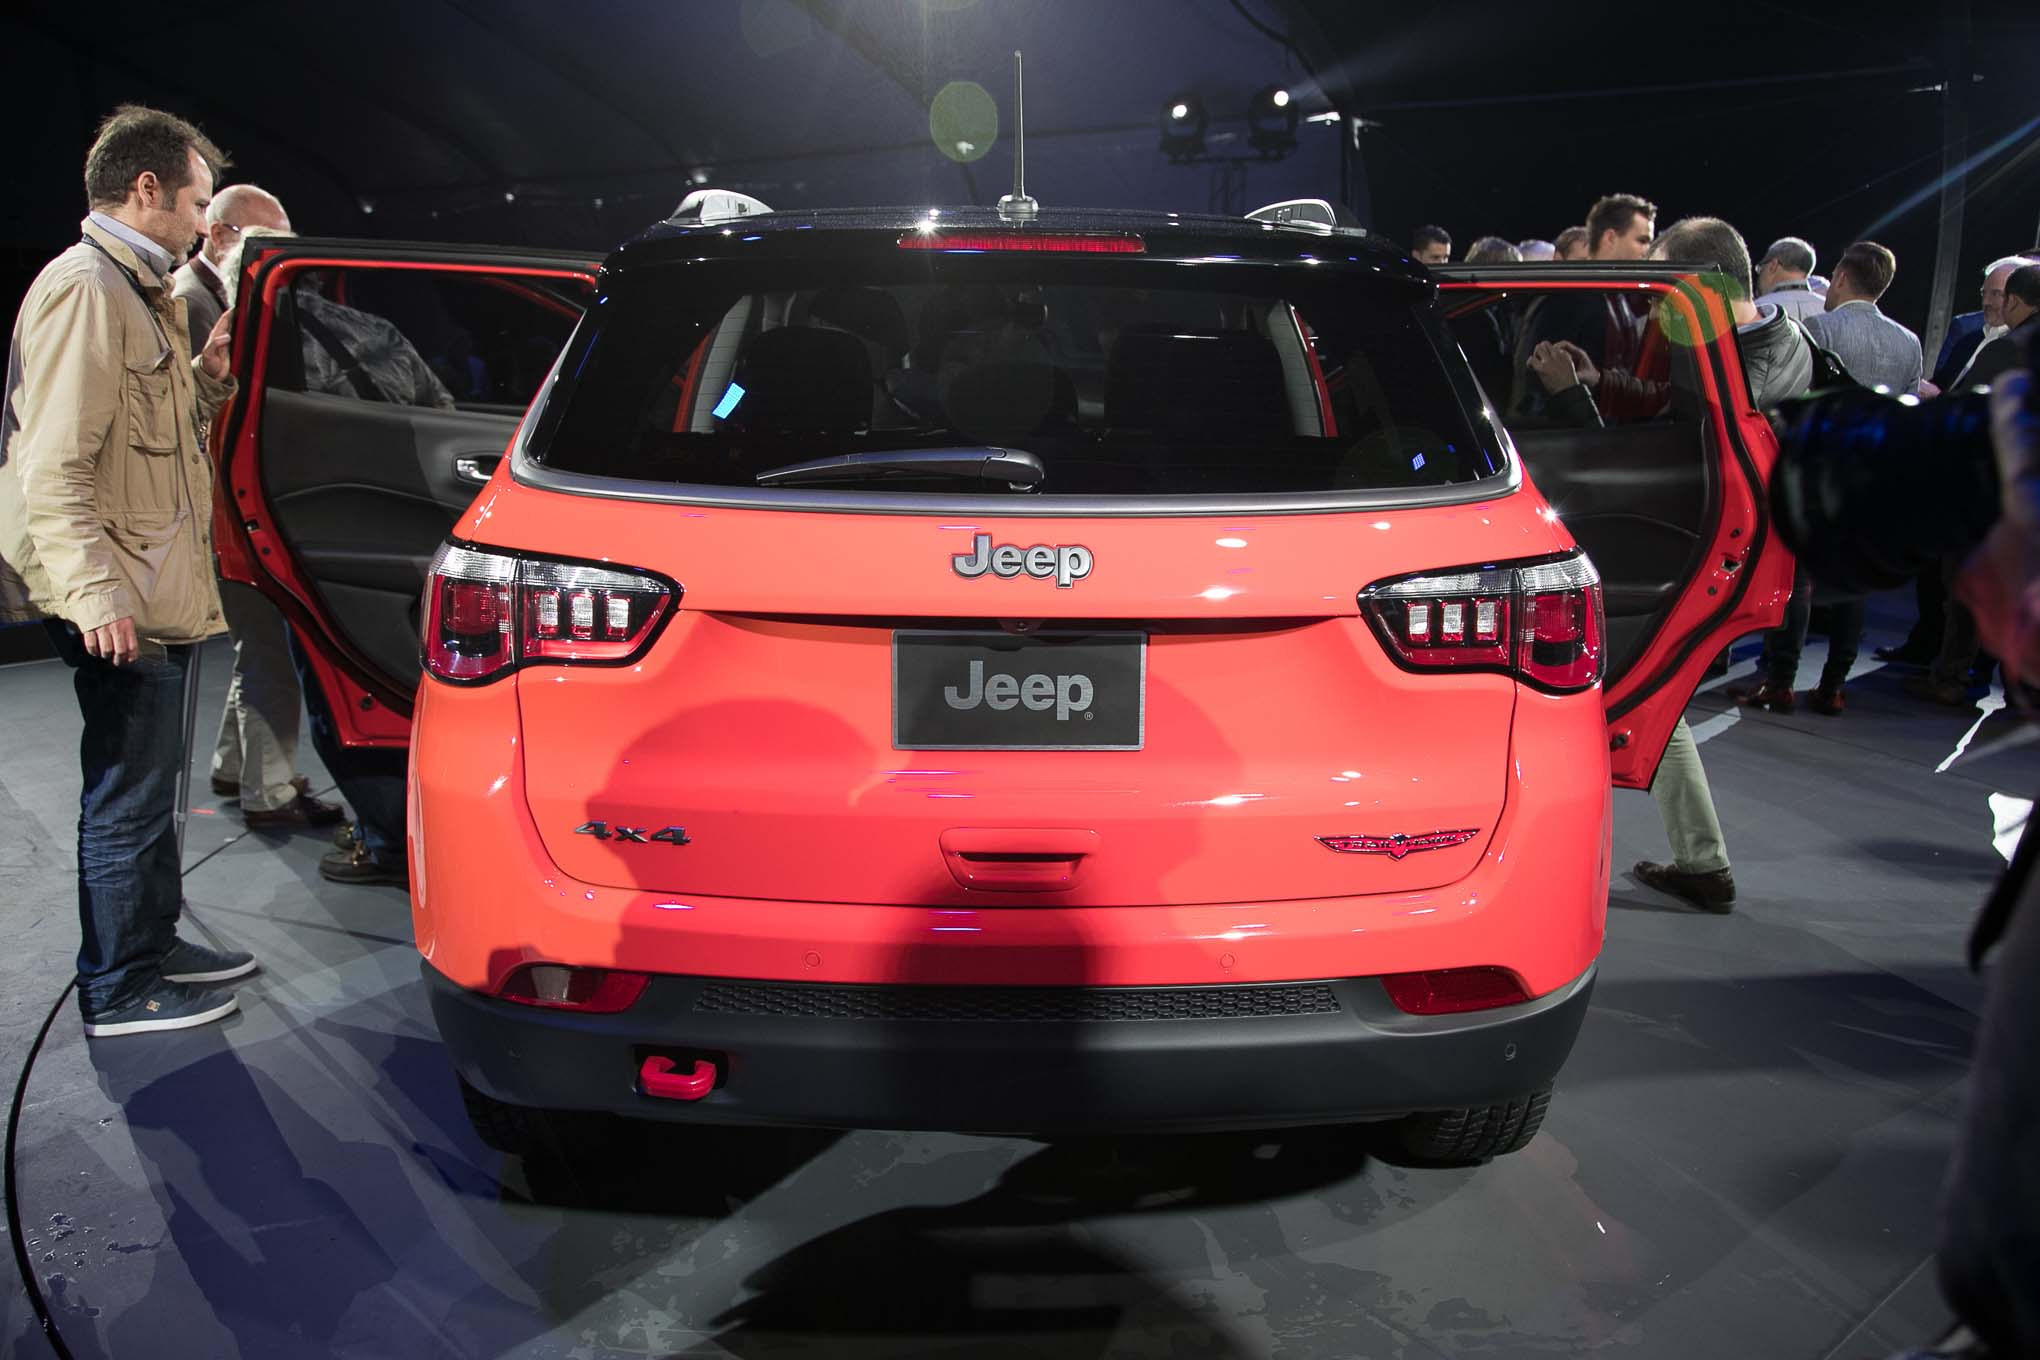 Baby Bronco Jeep Renegade additionally Jeep Grand Cherokee Trailhawk Front End In Motion furthermore Jeep Renegade Trailhawk Front End together with Jeep Renegade Rear Side furthermore S L. on jeep renegade trailhawk front end